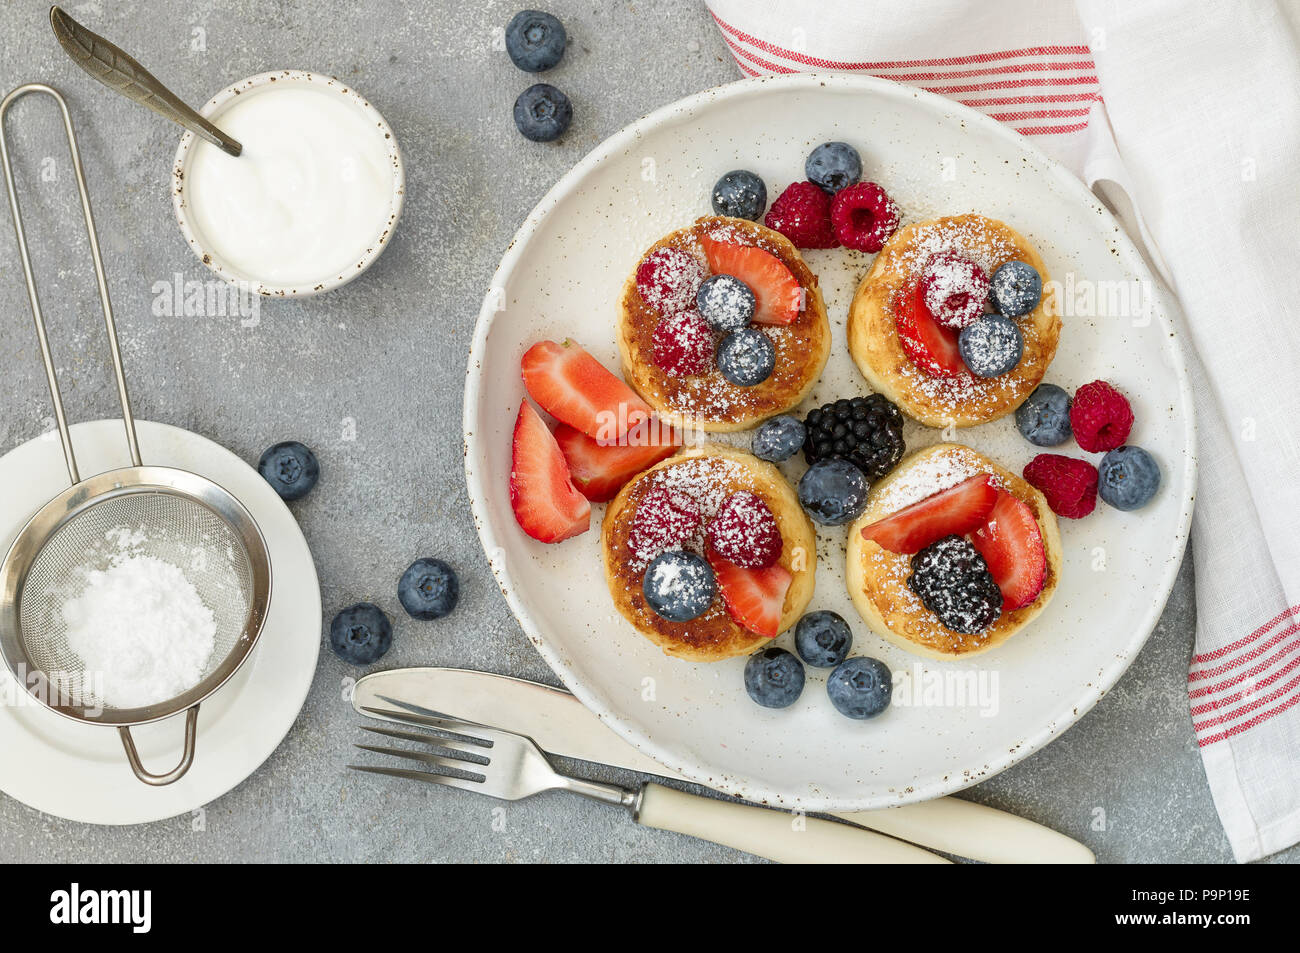 Cottage cheese pancakes, syrniki, curd fritters with fresh berries (raspberry, strawberry, blueberry, BlackBerry) and powdered sugar in a white plate. - Stock Image